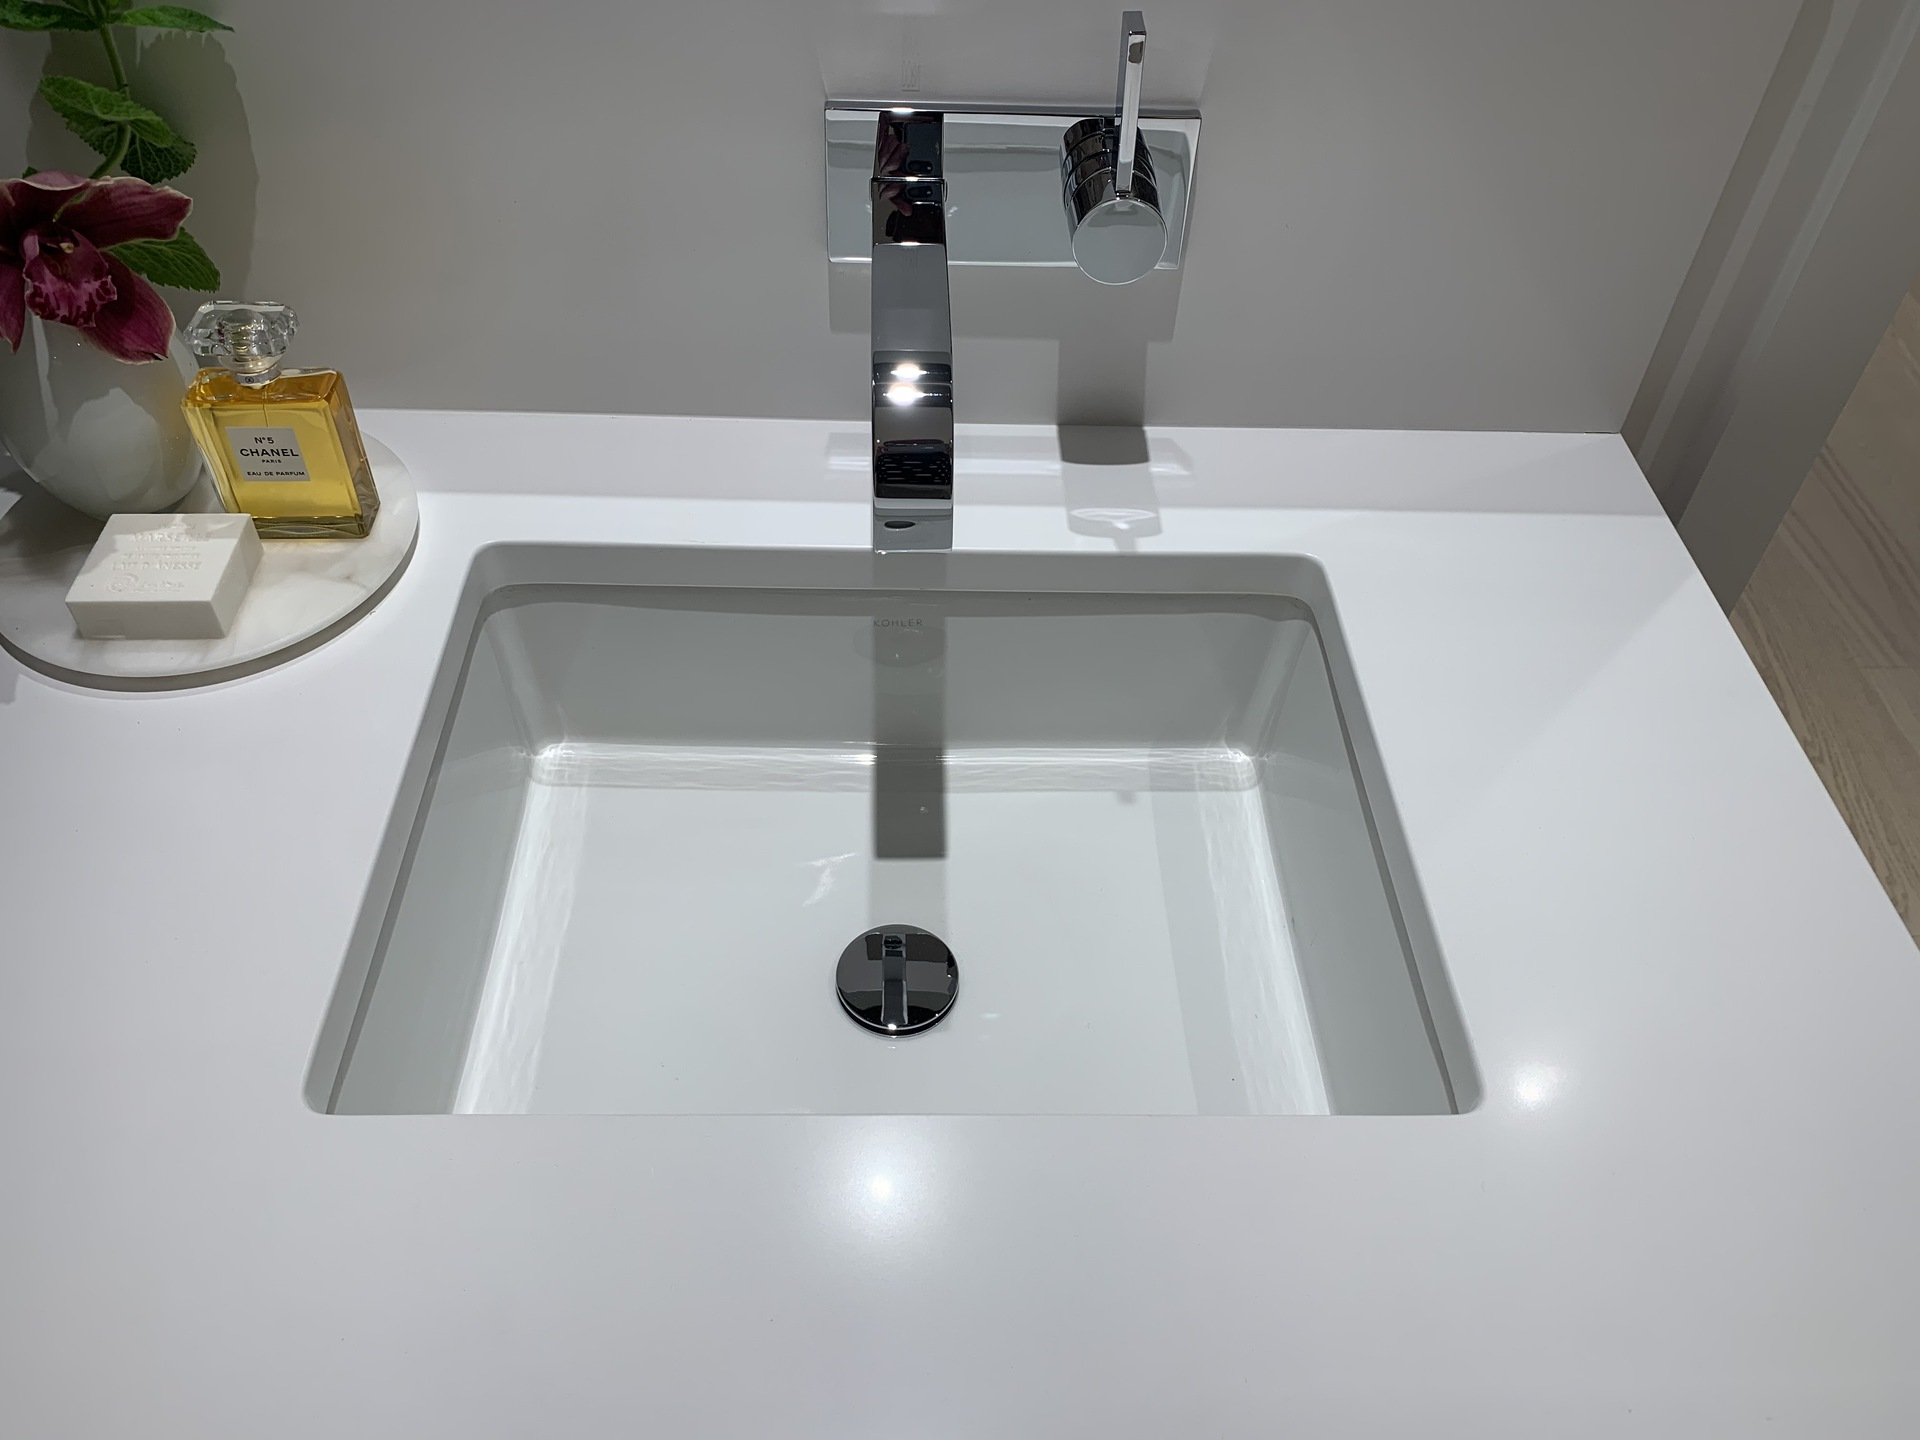 Legacy en-suite undermounted sink at Legacy on Dunbar (4464 Dunbar Street, Dunbar, Vancouver West)